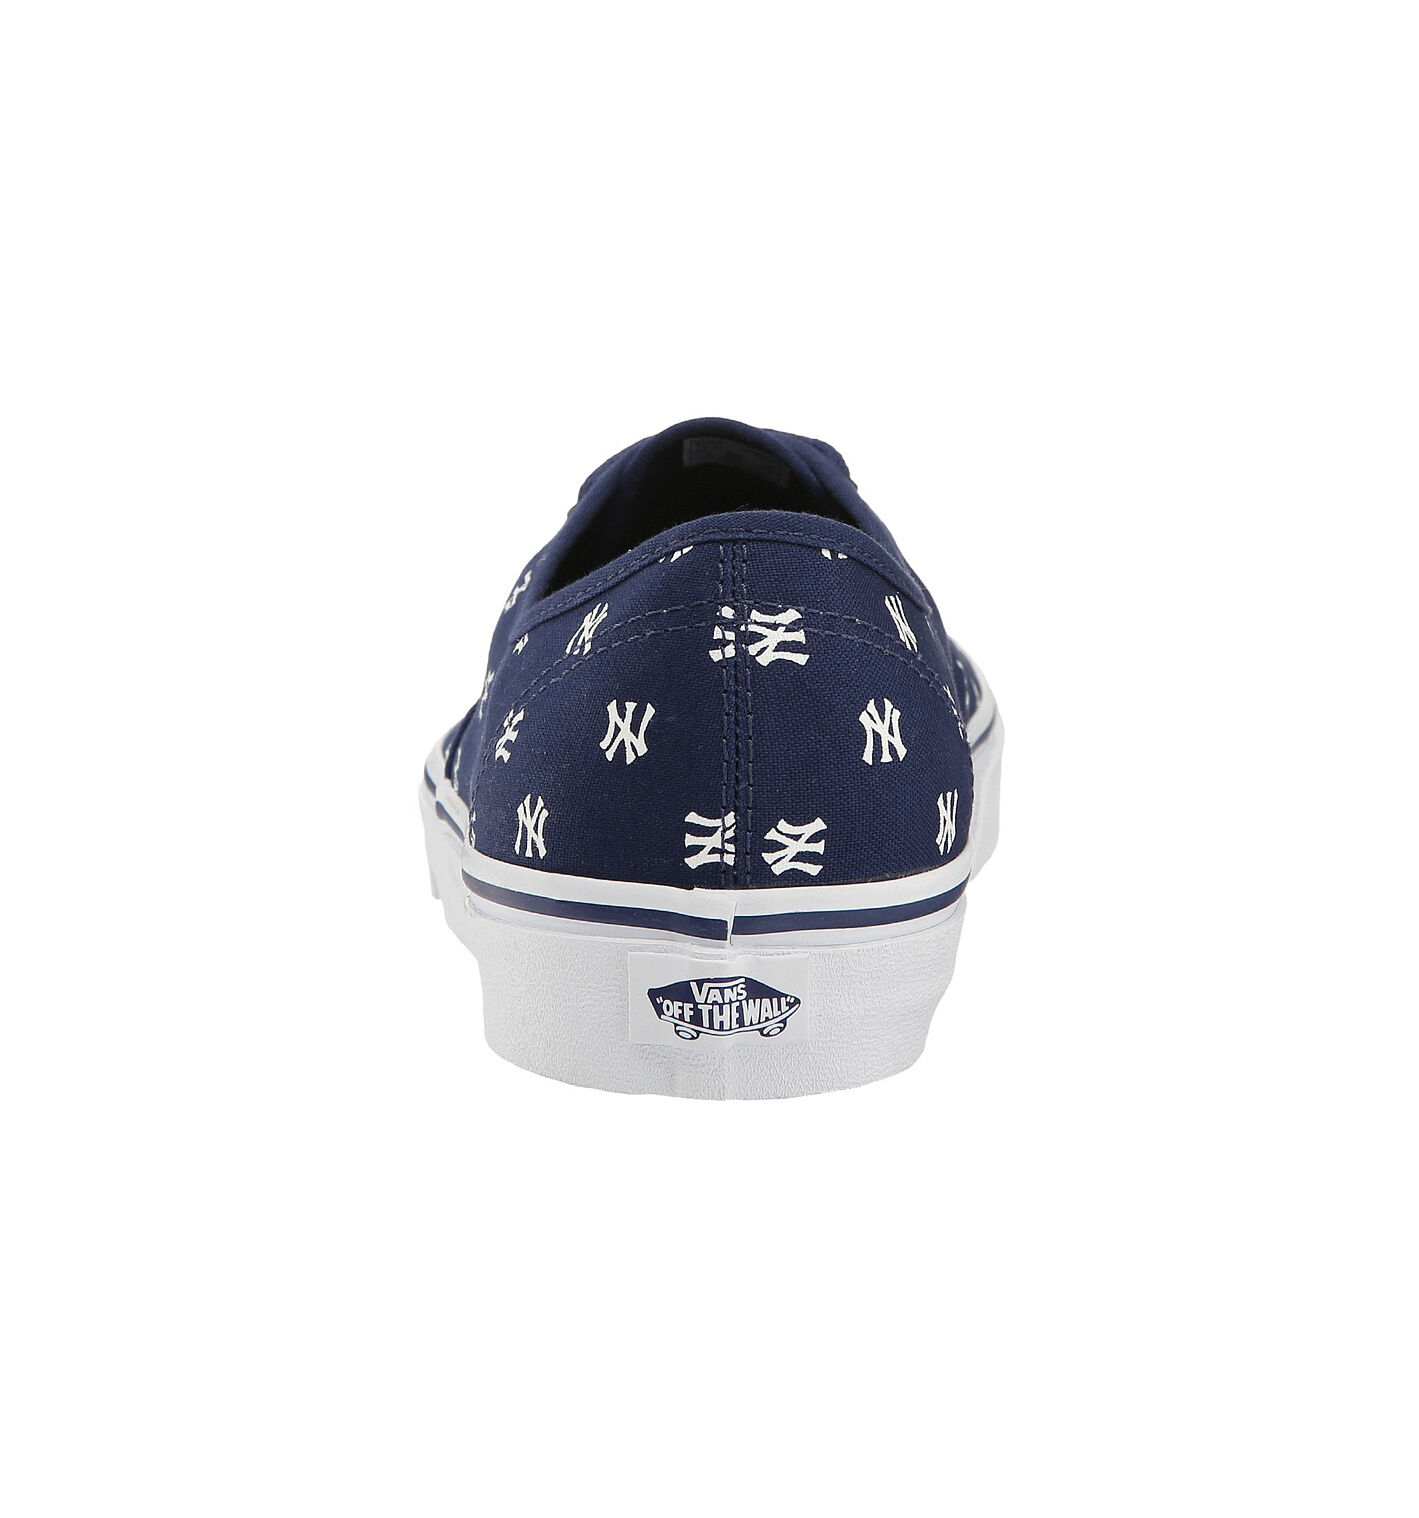 Scarpe casual da uomo  Vans Unisex Wouomo uomo Shoes Authentic MLB New York Yankees Navy Blue Prints